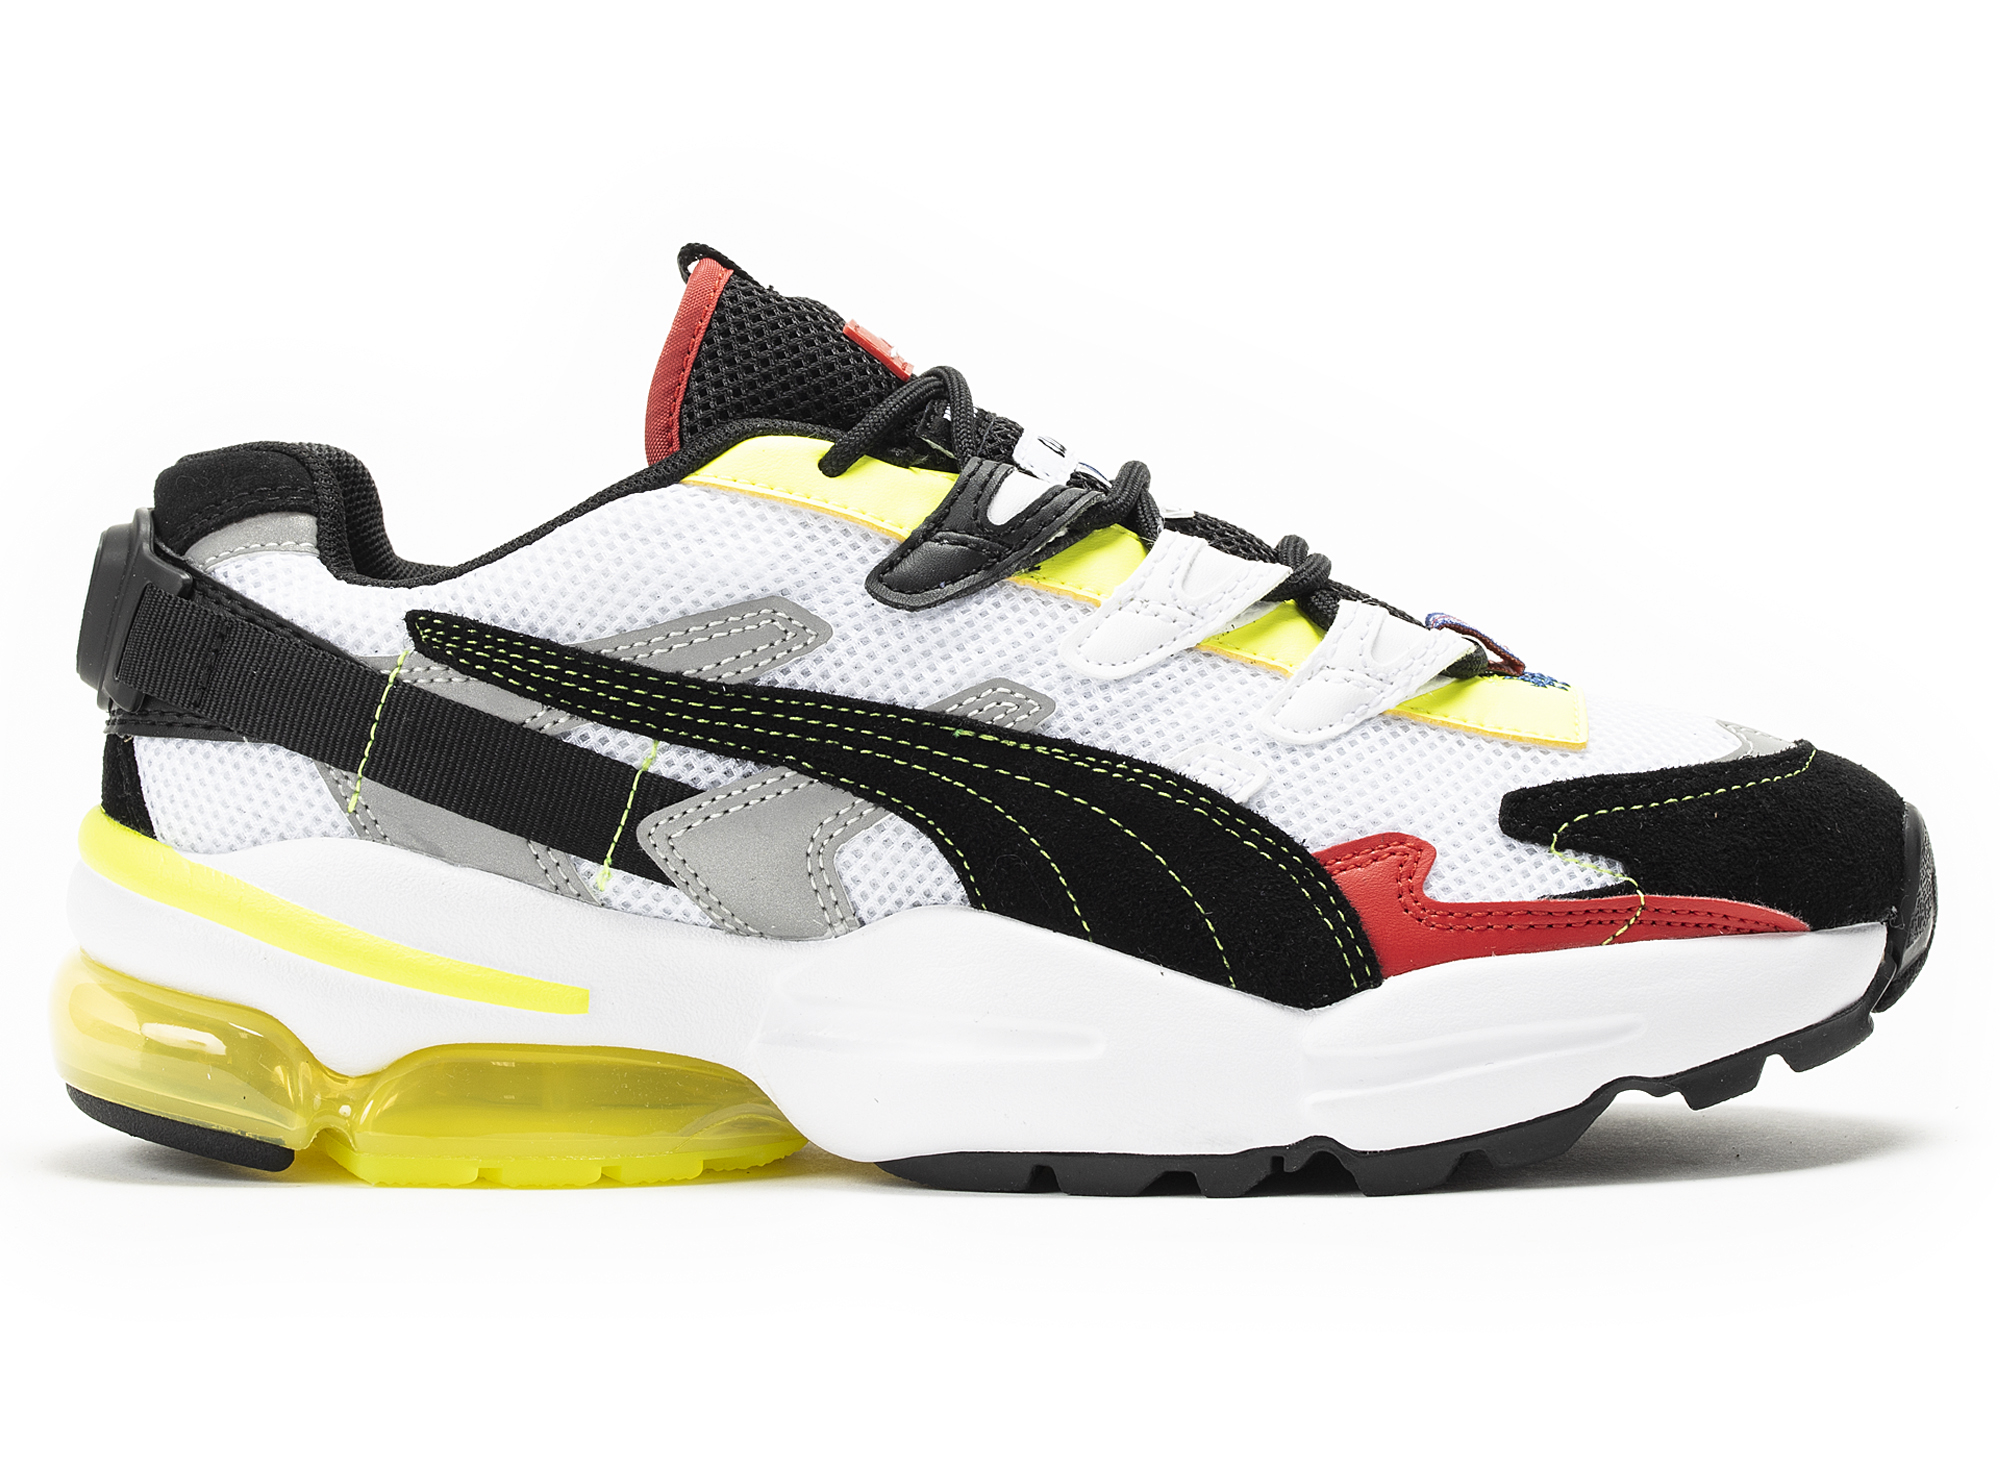 Puma x Ader Error Cell Alien